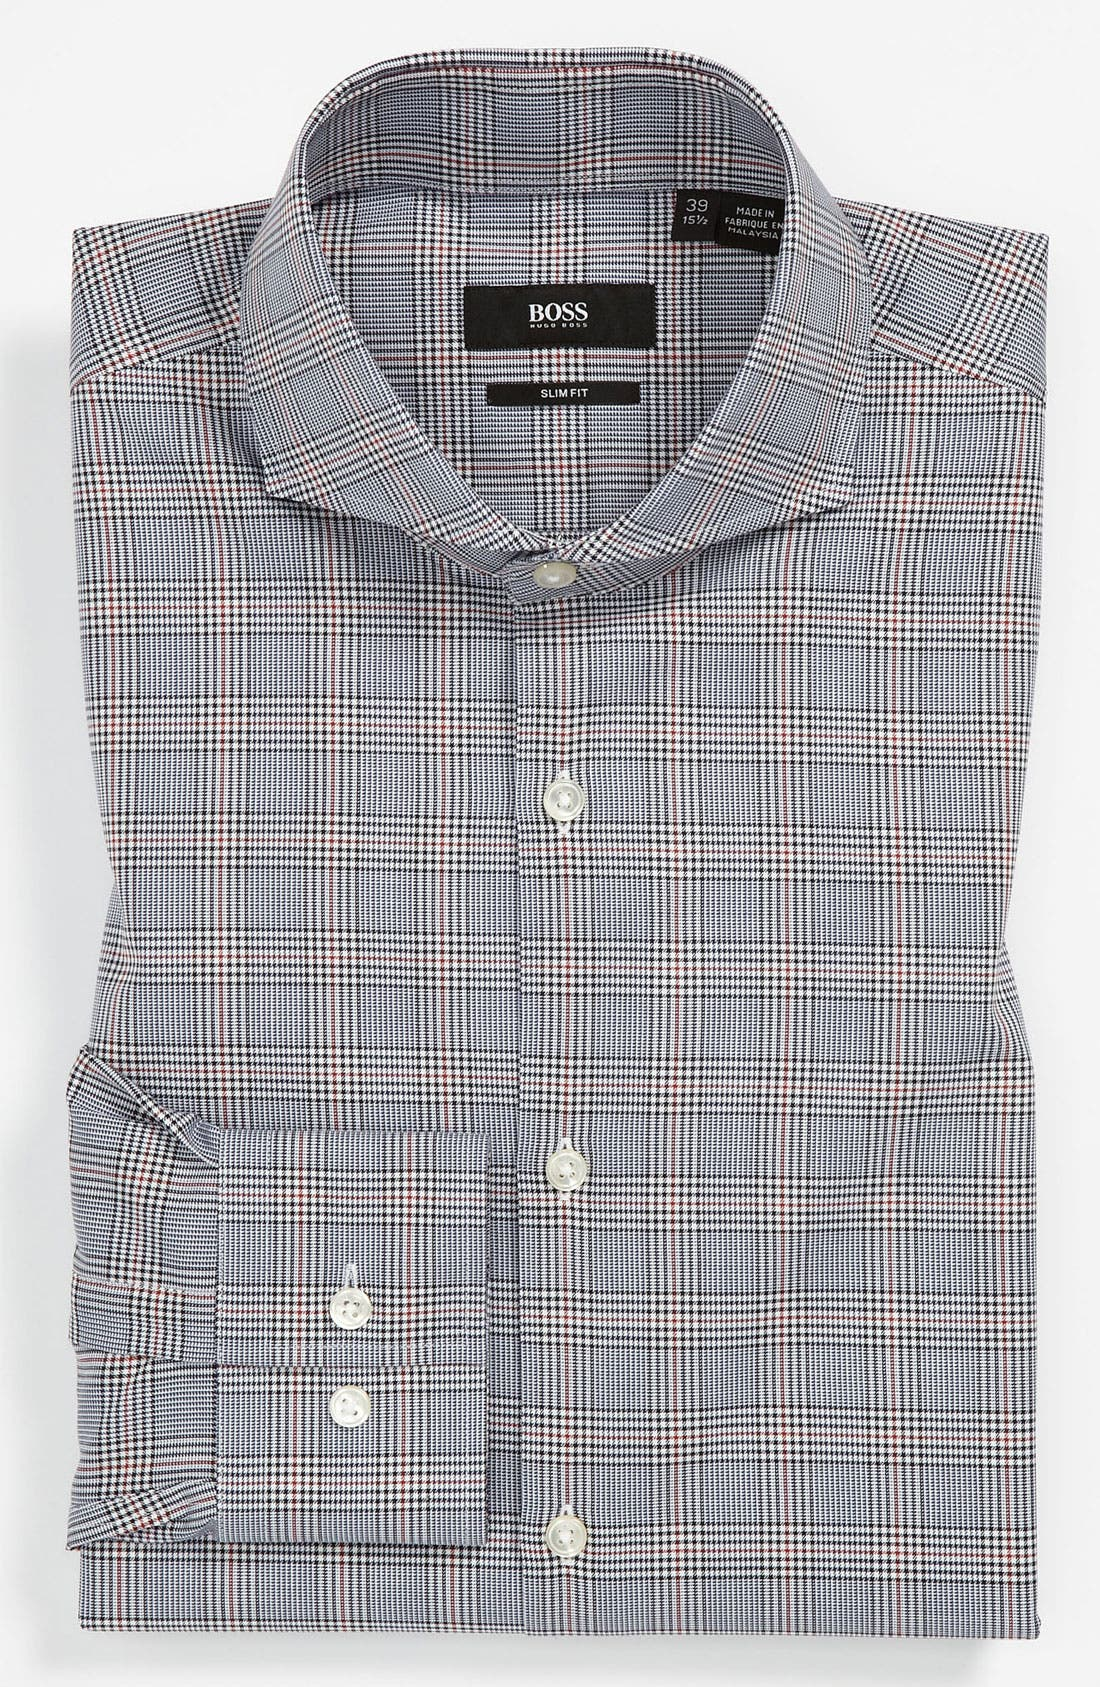 Alternate Image 1 Selected - BOSS Black Slim Fit Dress Shirt (Online Only)